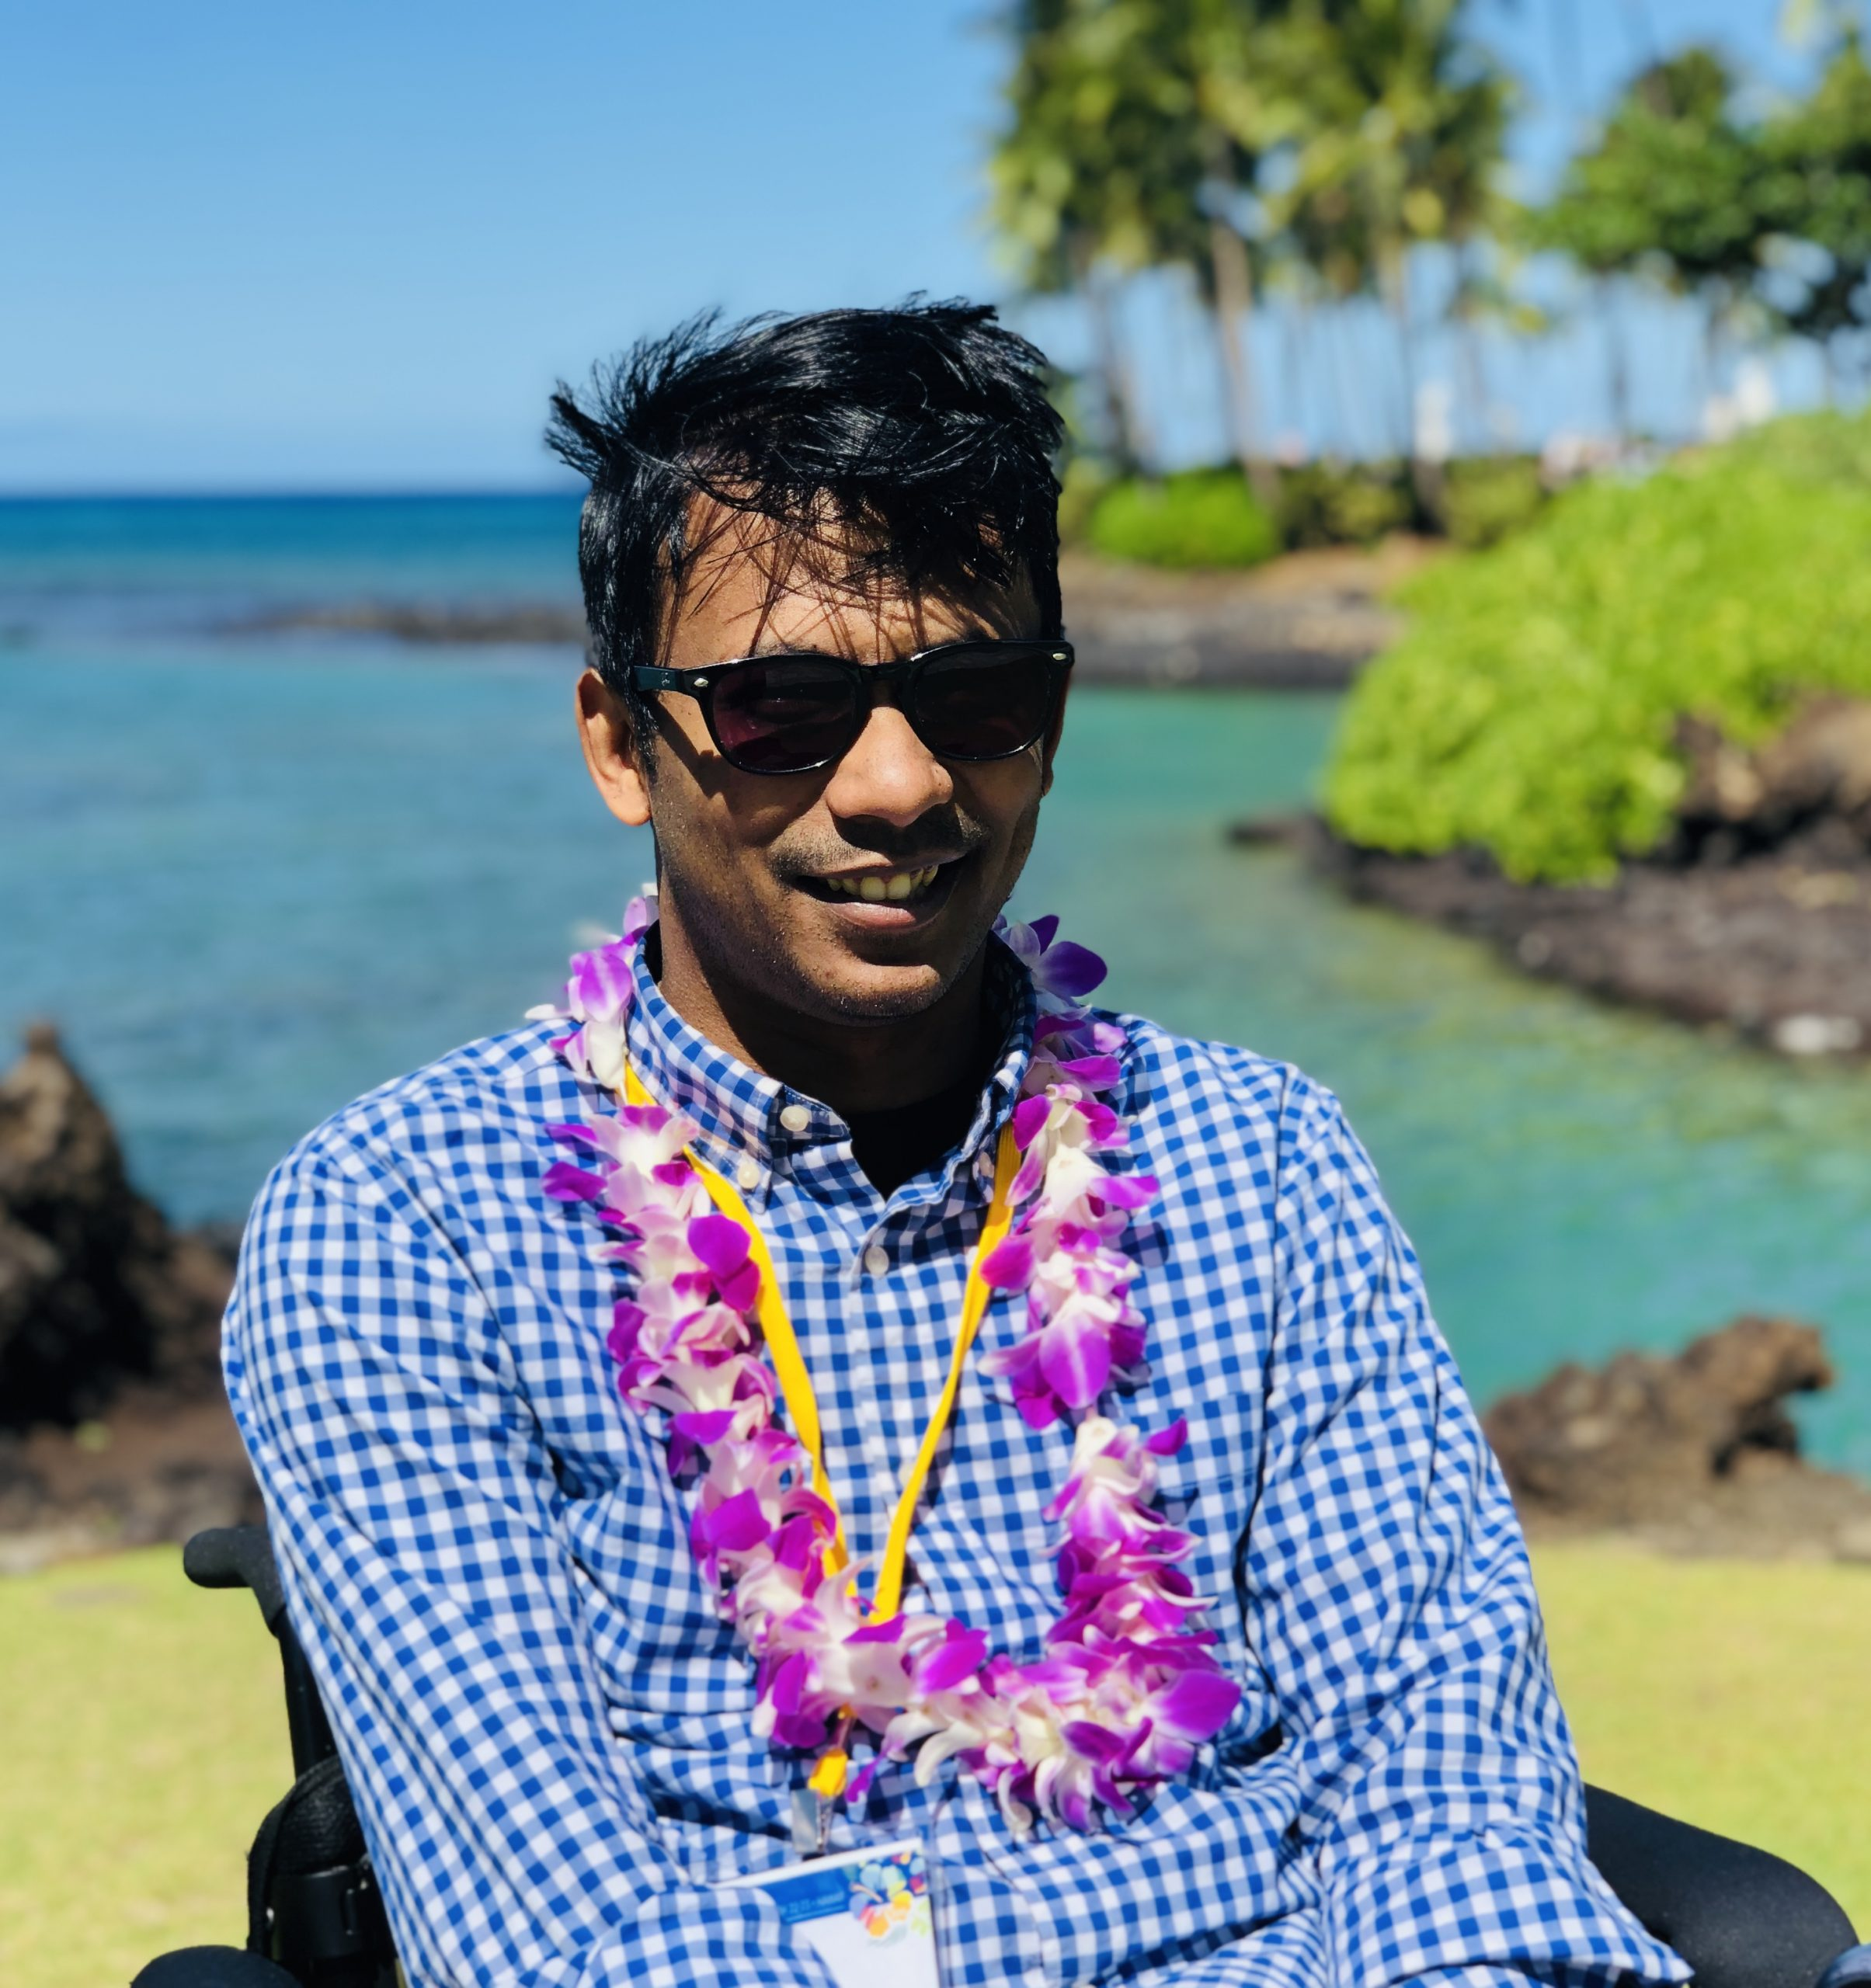 Ather Sharif smiling, wearing flower lei and sunglasses